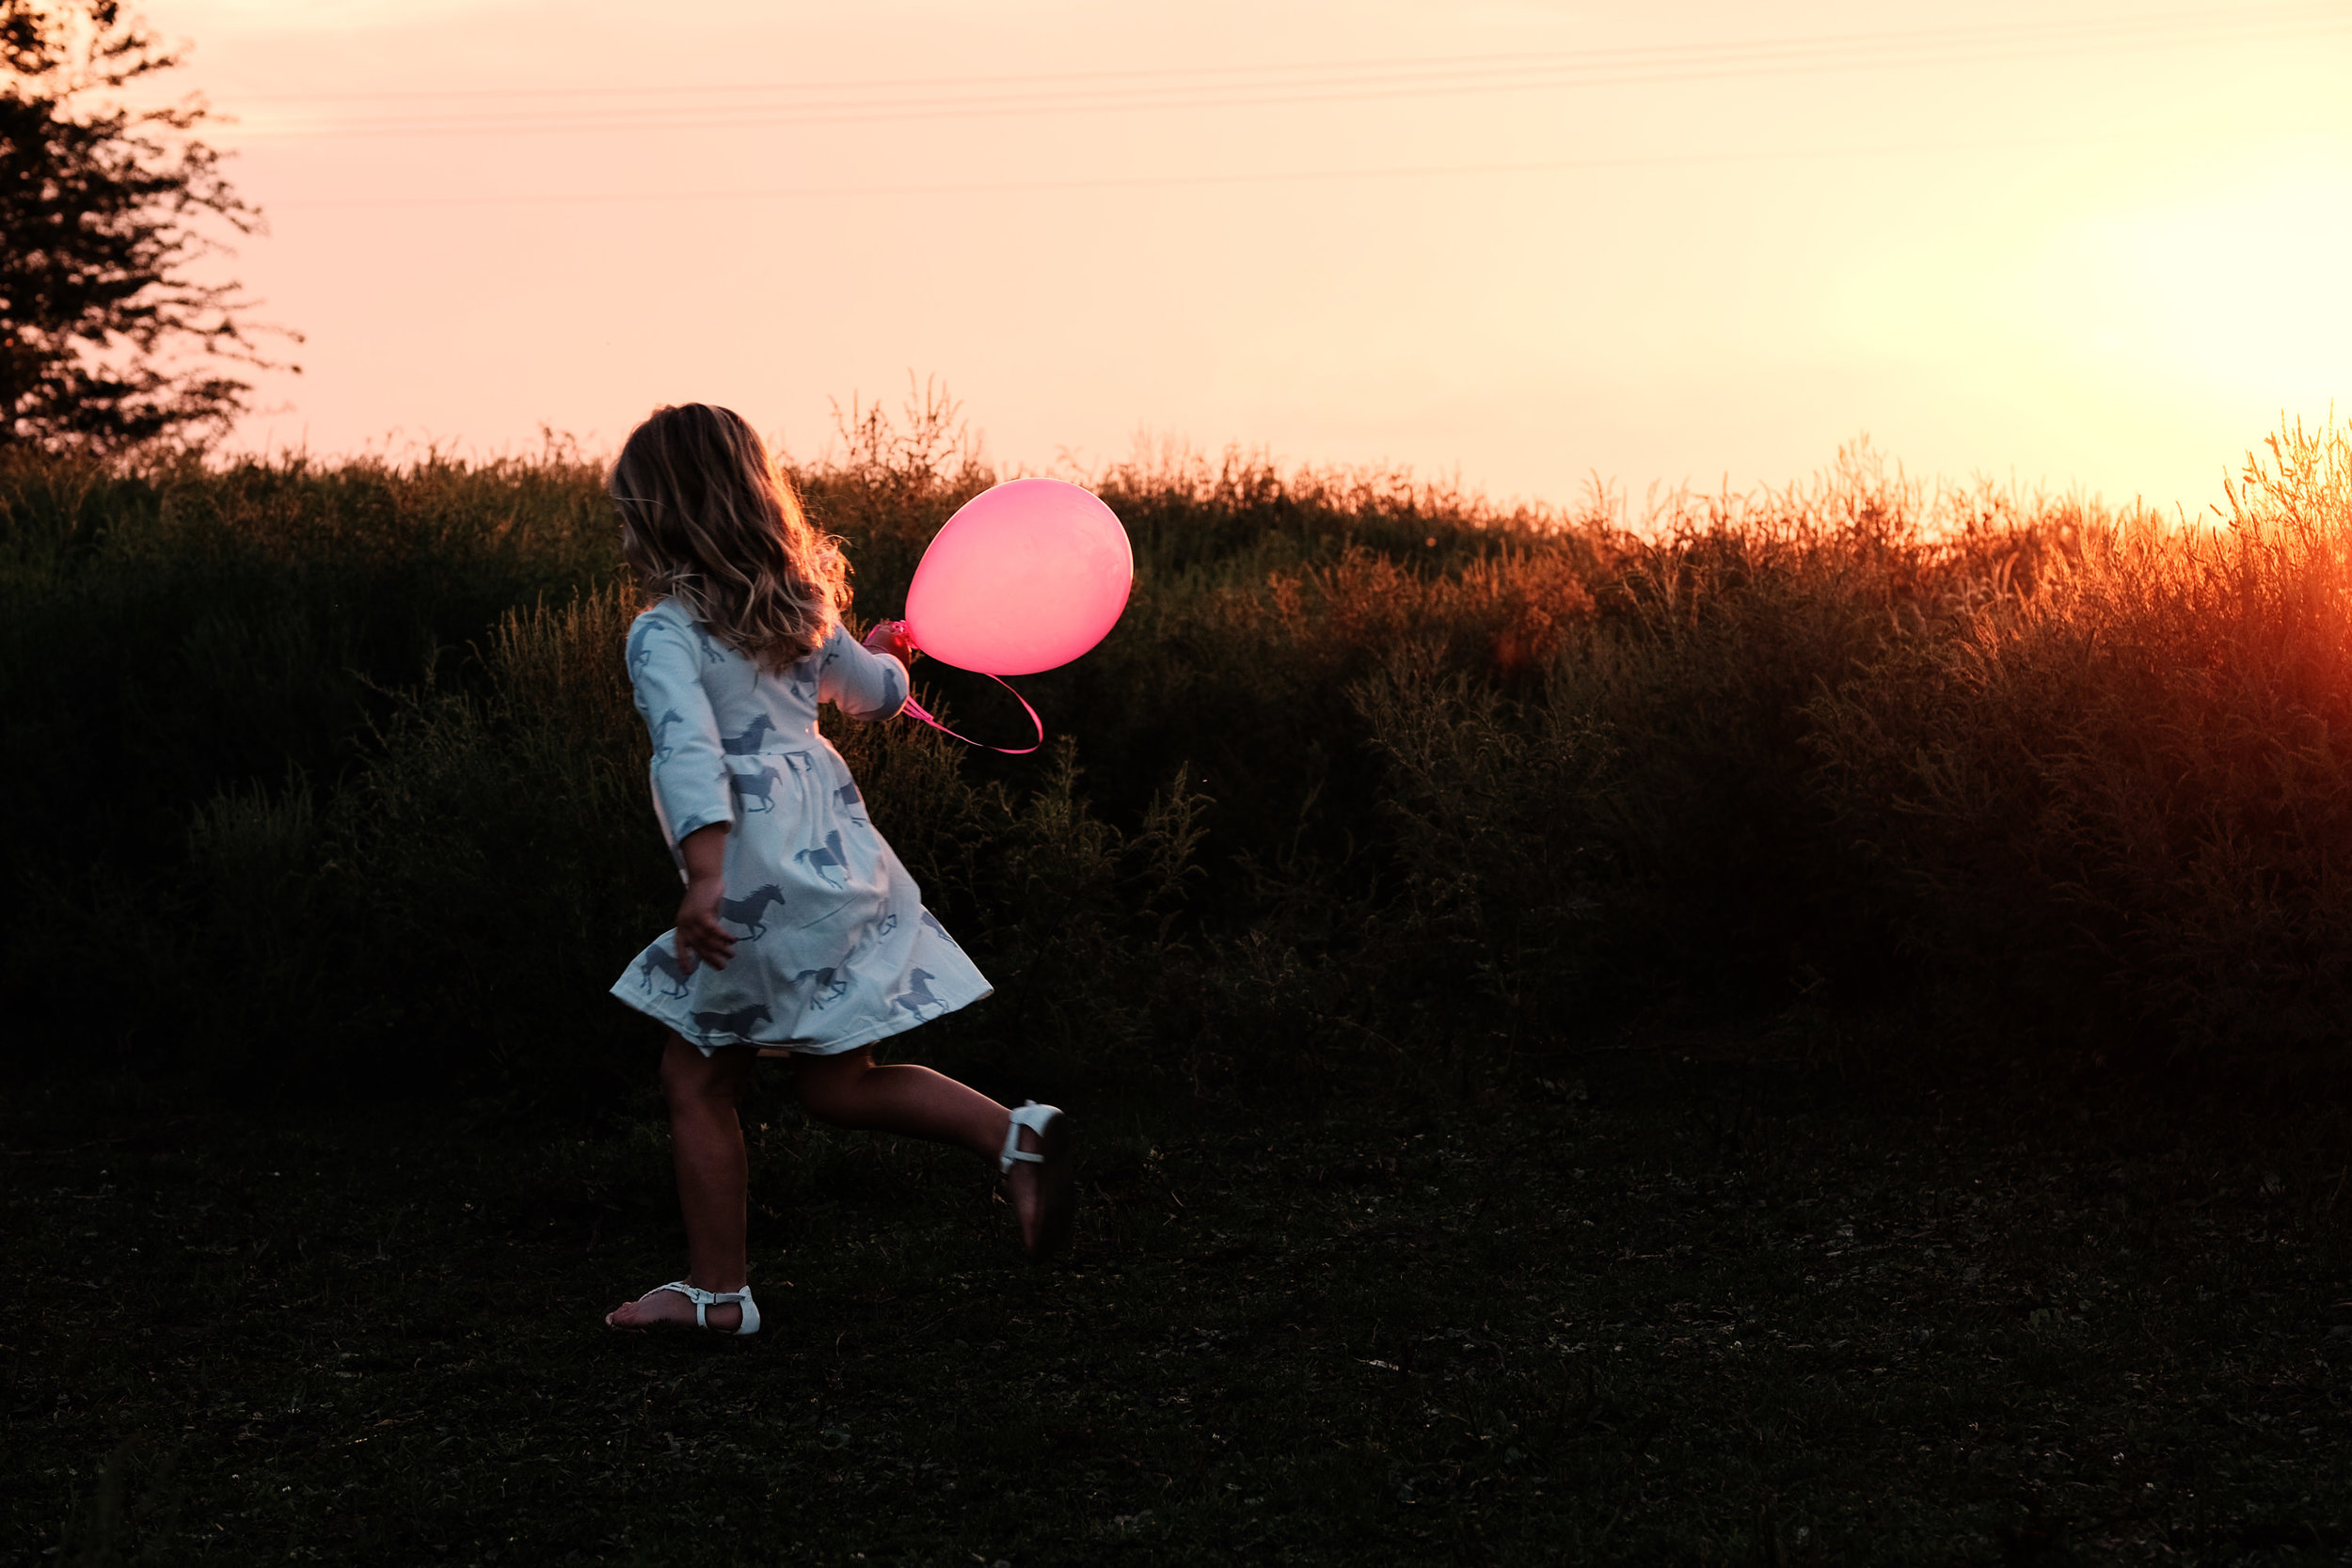 A girl running with a balloon in the sunset.